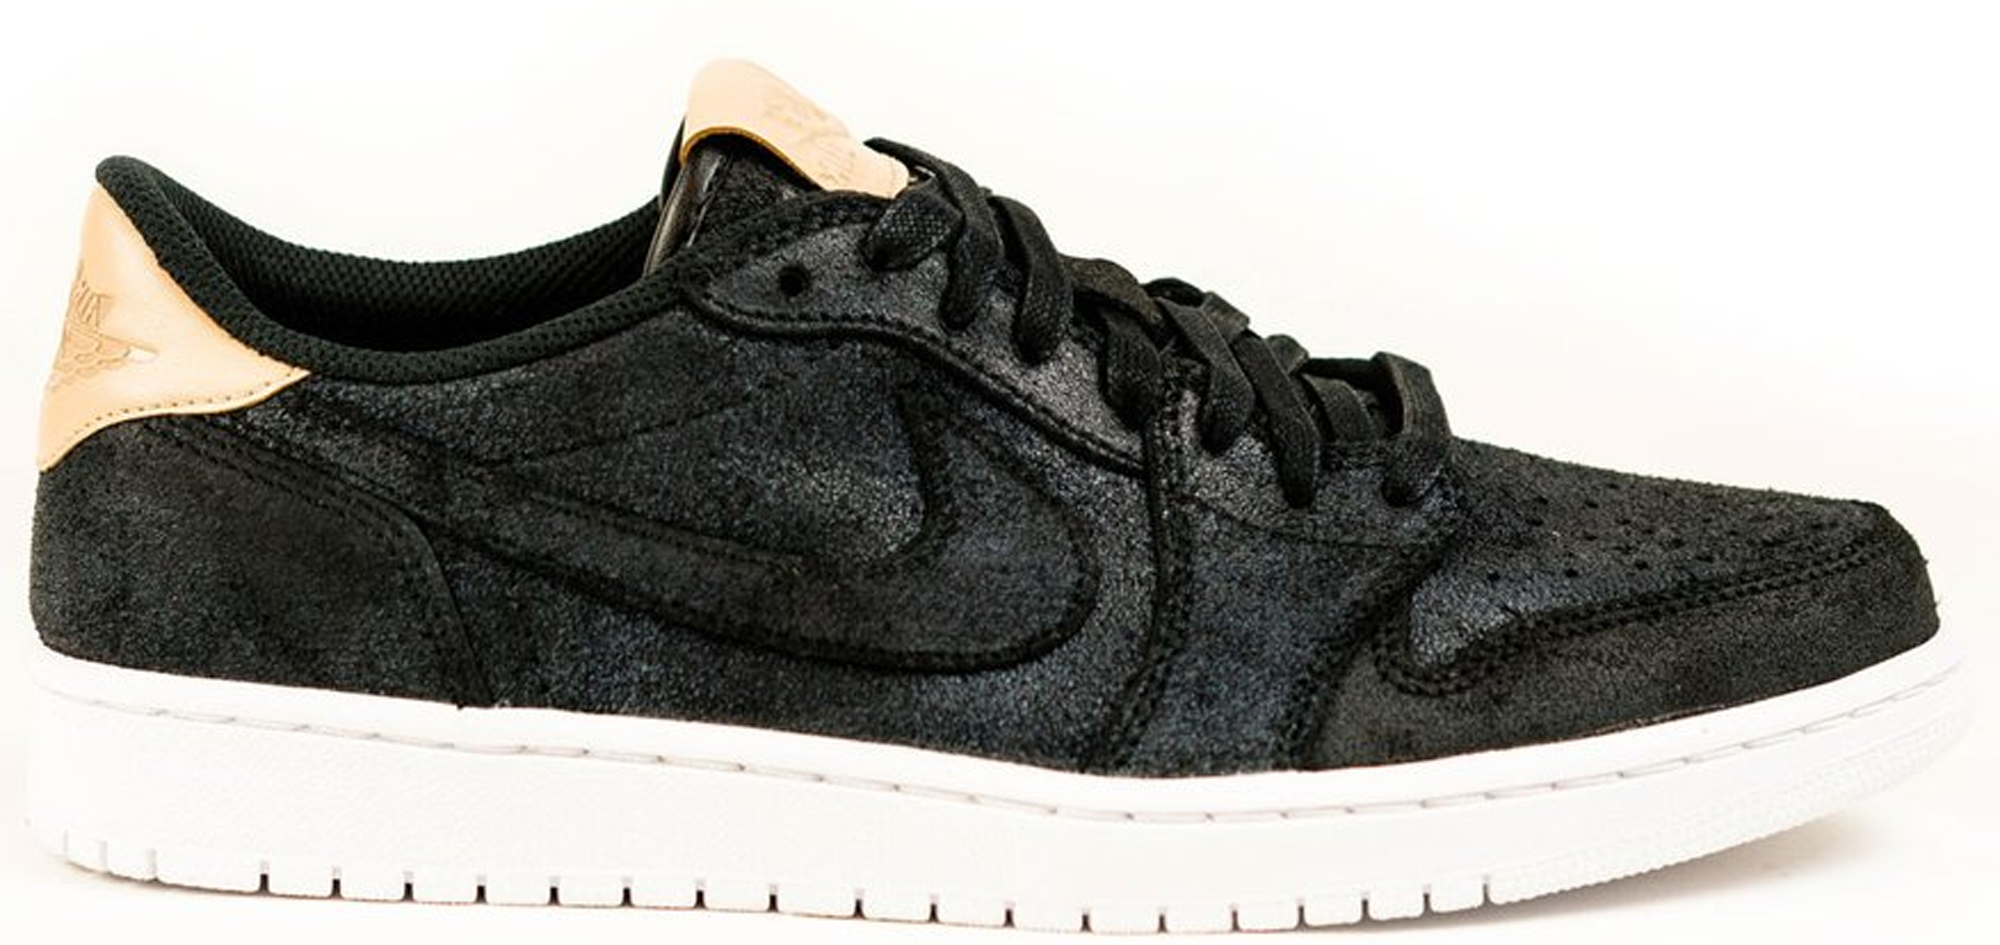 fee3f6a4842cb5 Air Jordan 1 Retro Low OG Premium Black Vachetta Tan White